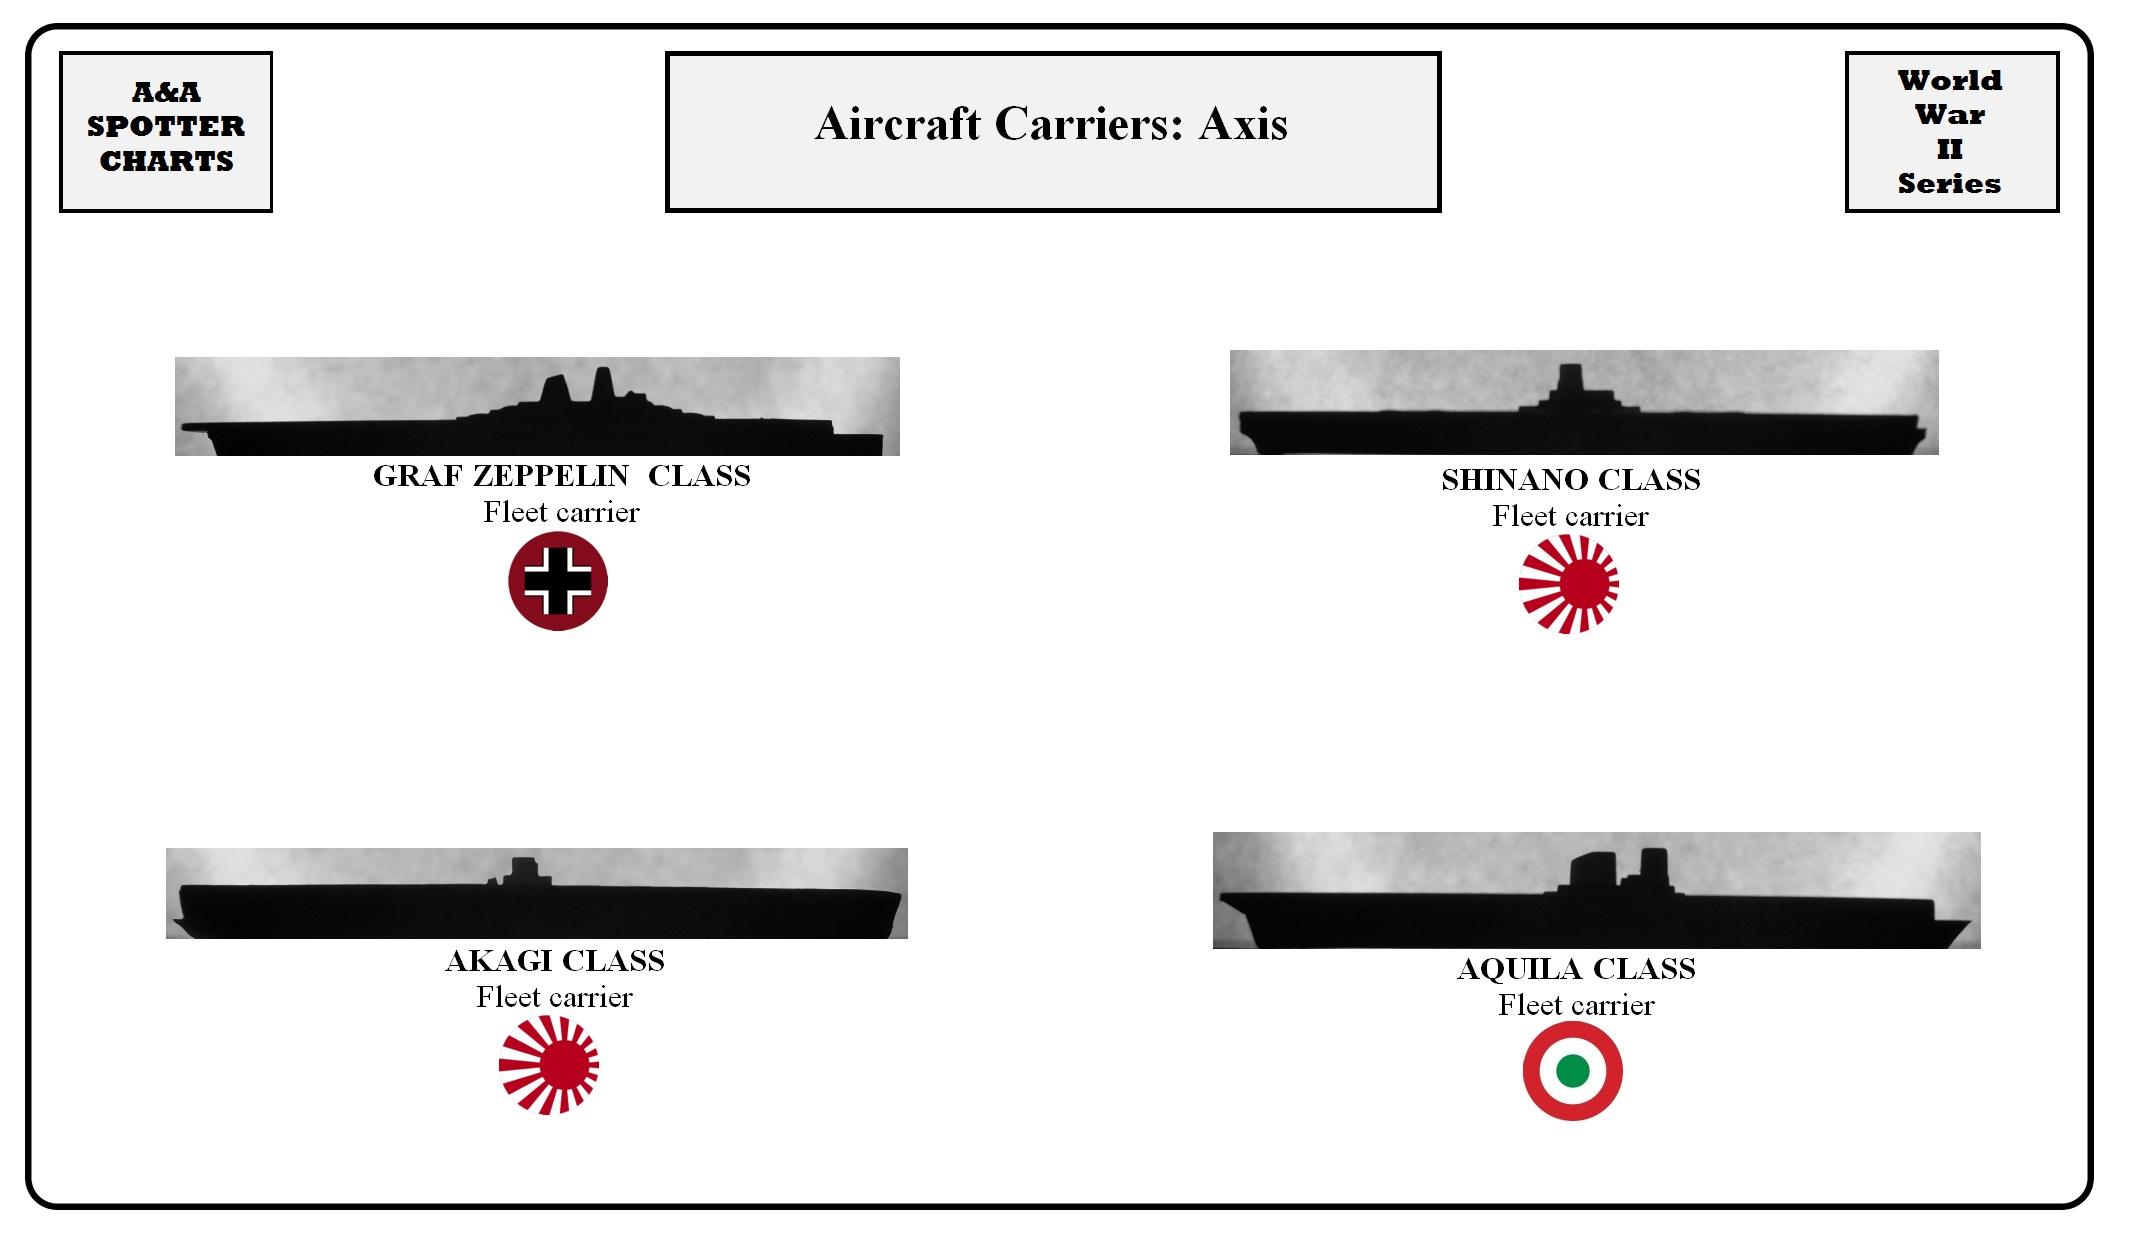 WW2-Sea- Aircraft Carriers-Axis.jpg